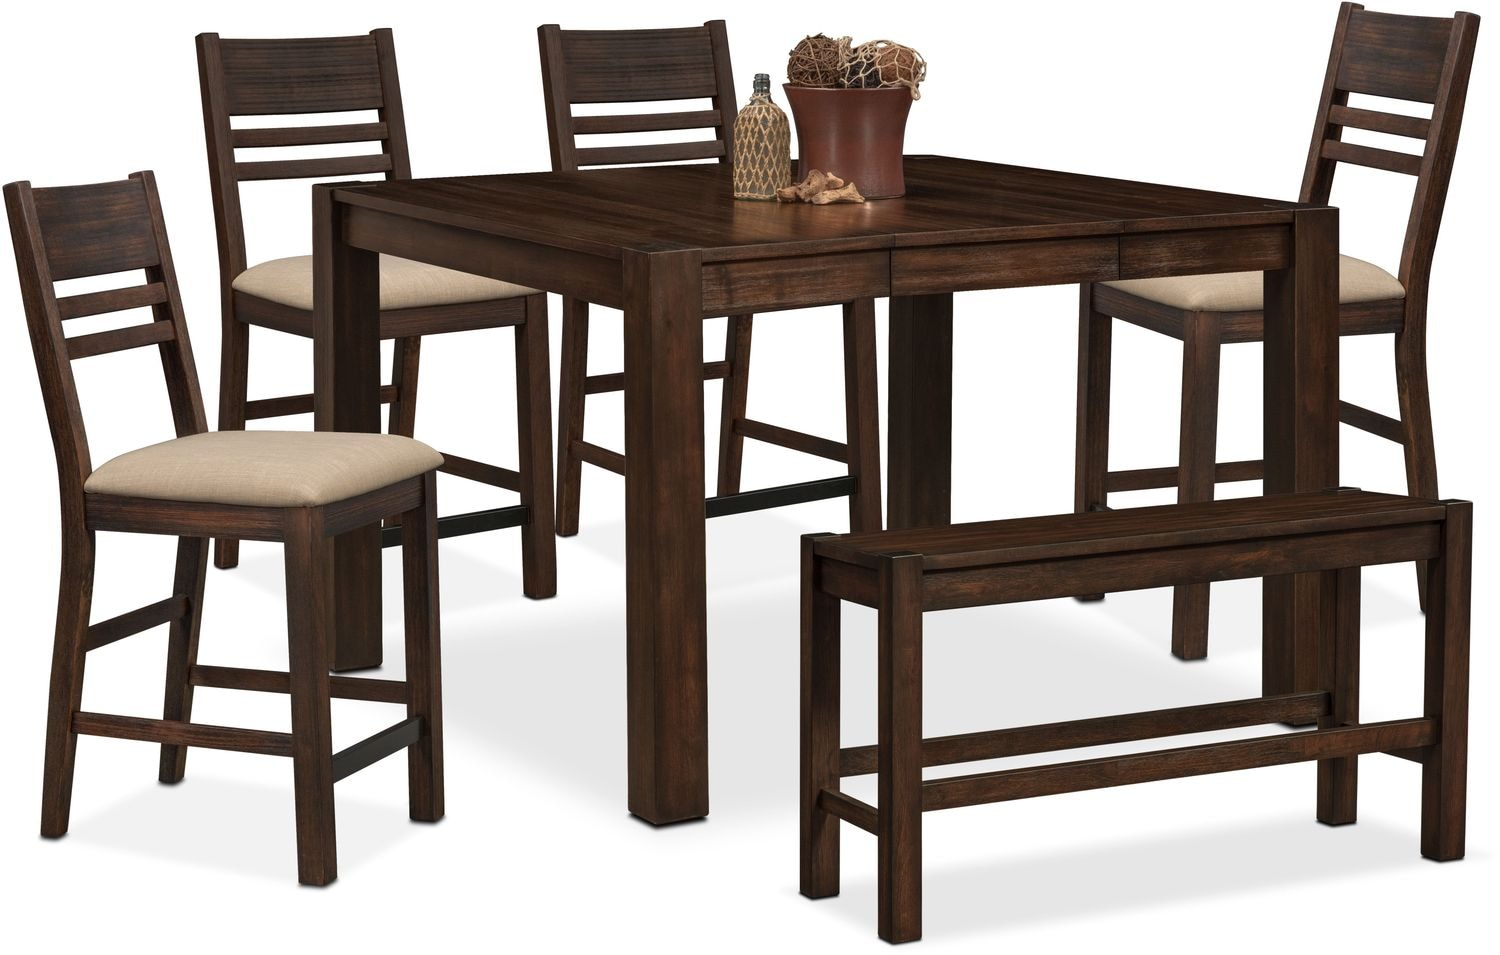 tribeca counter height table 4 side chairs and bench tobacco hover to zoom